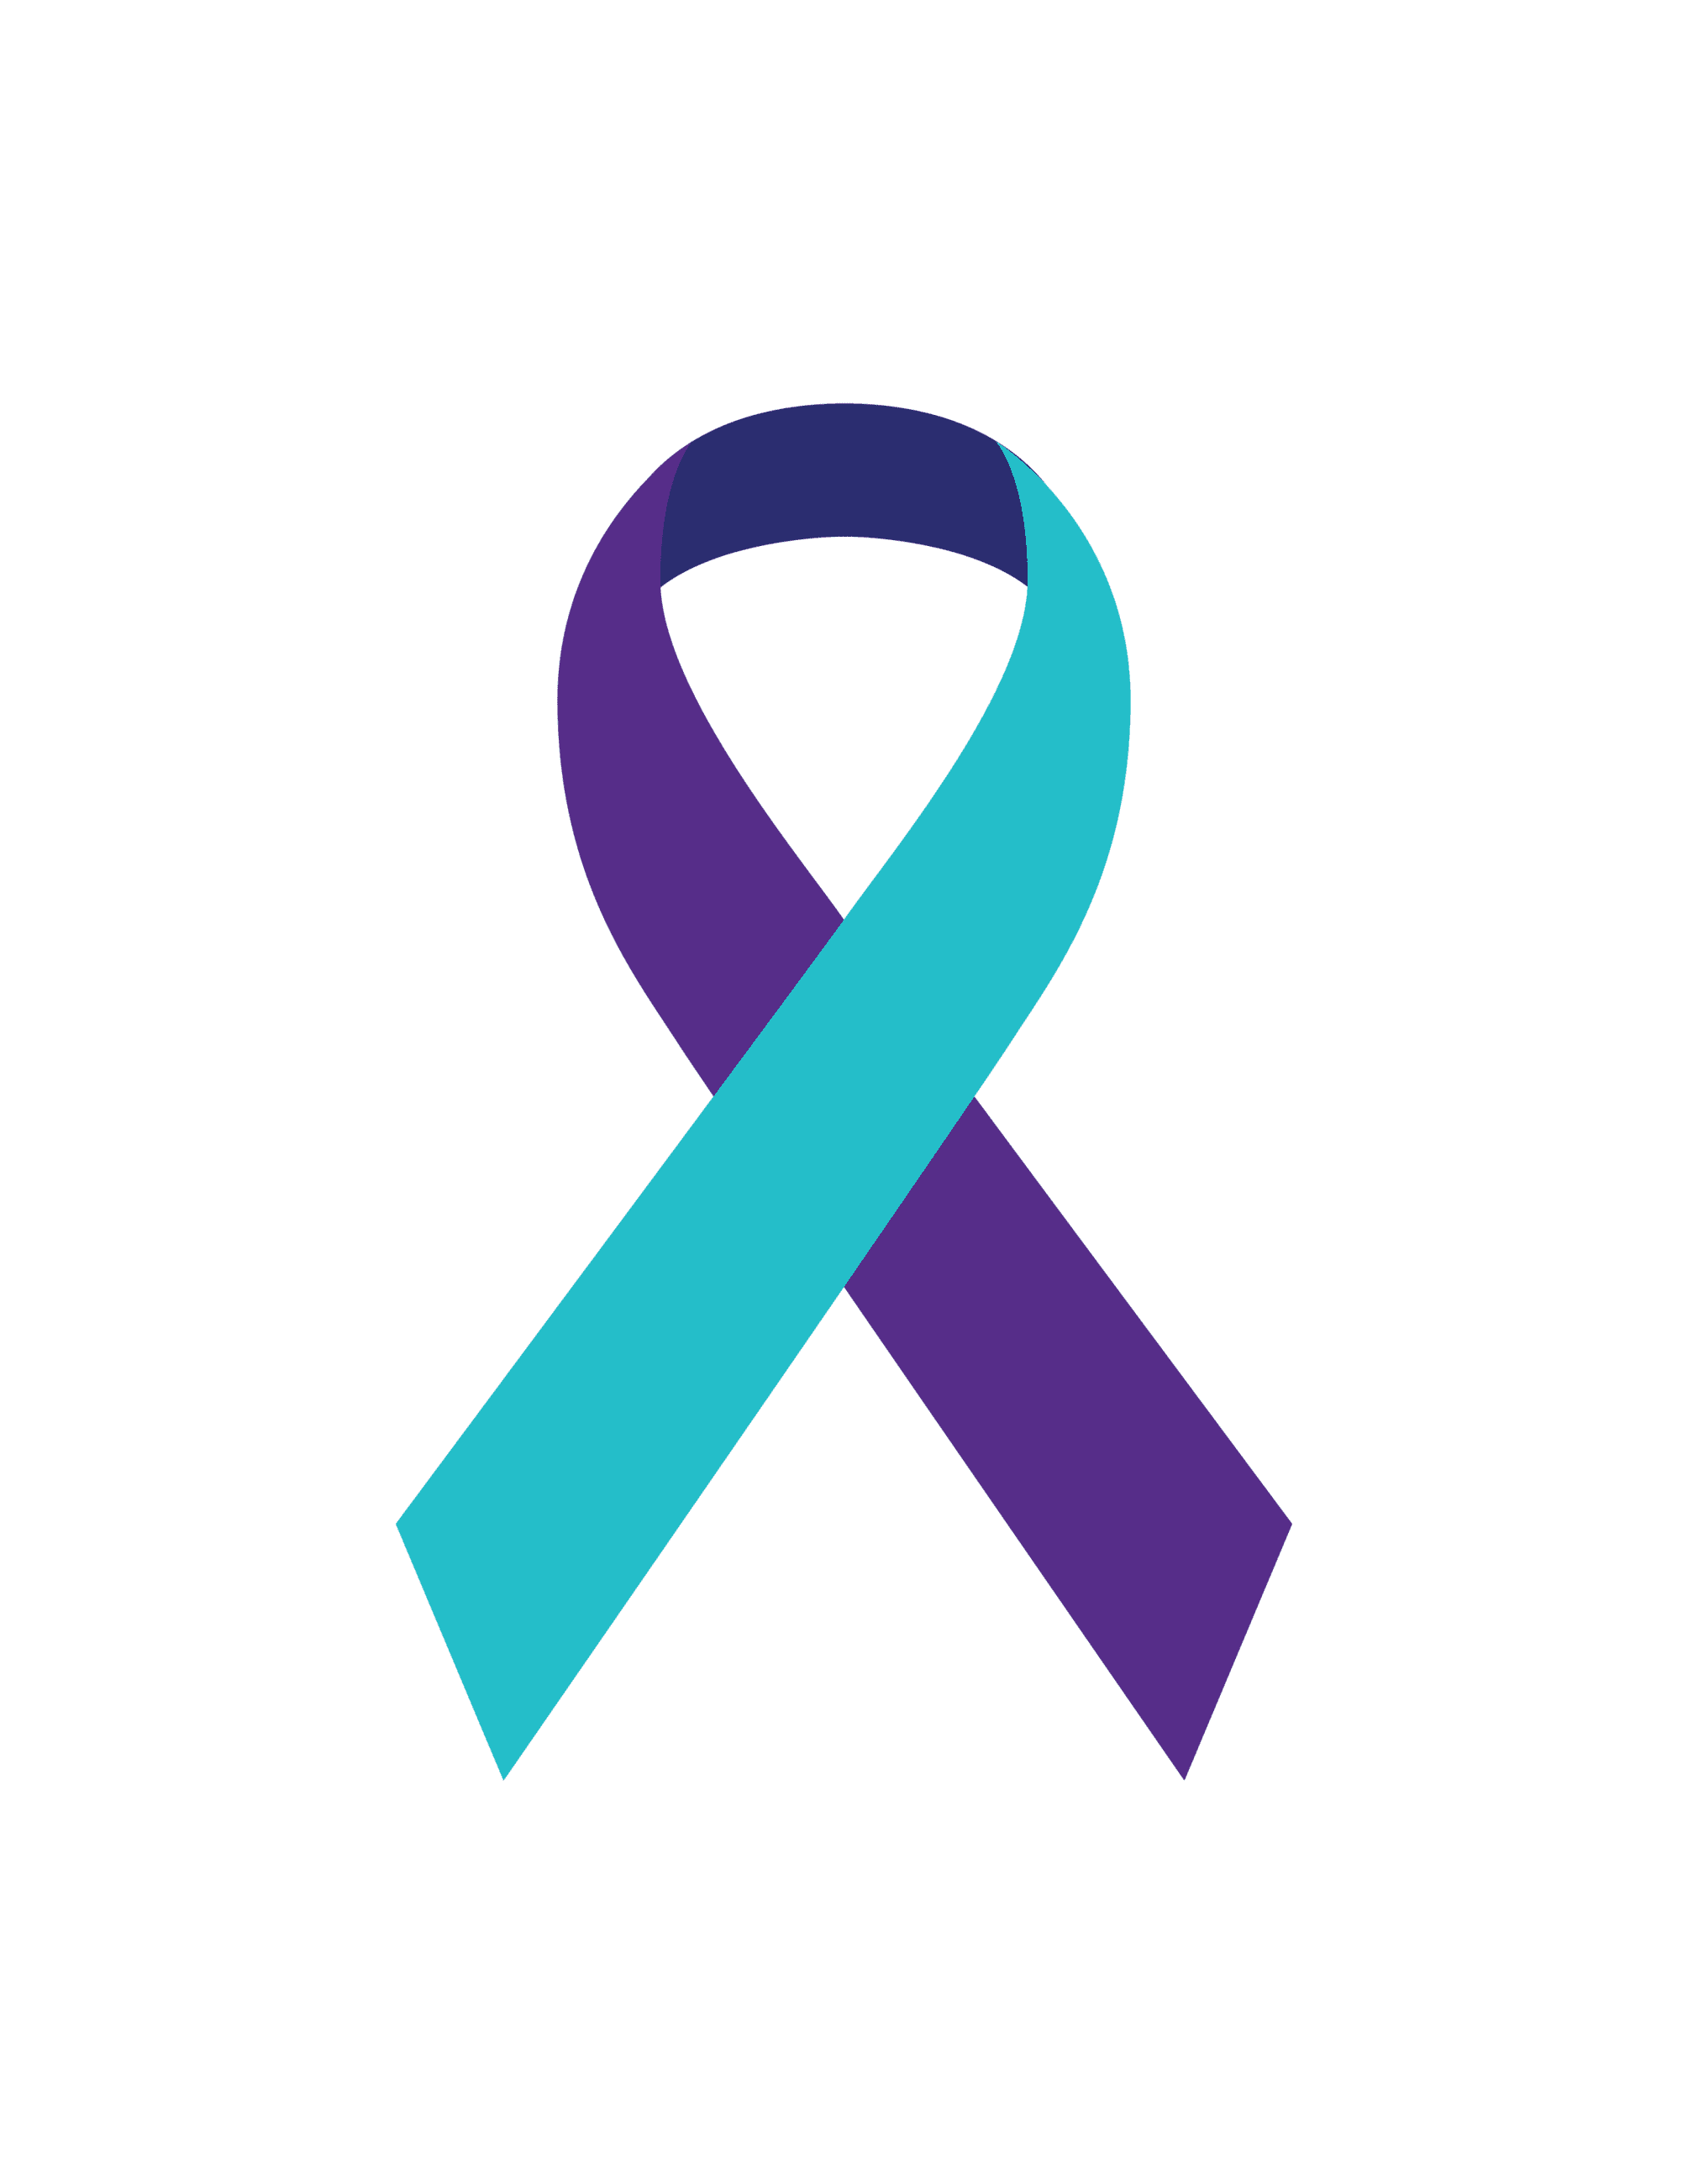 Suicide Prevention Ribbon